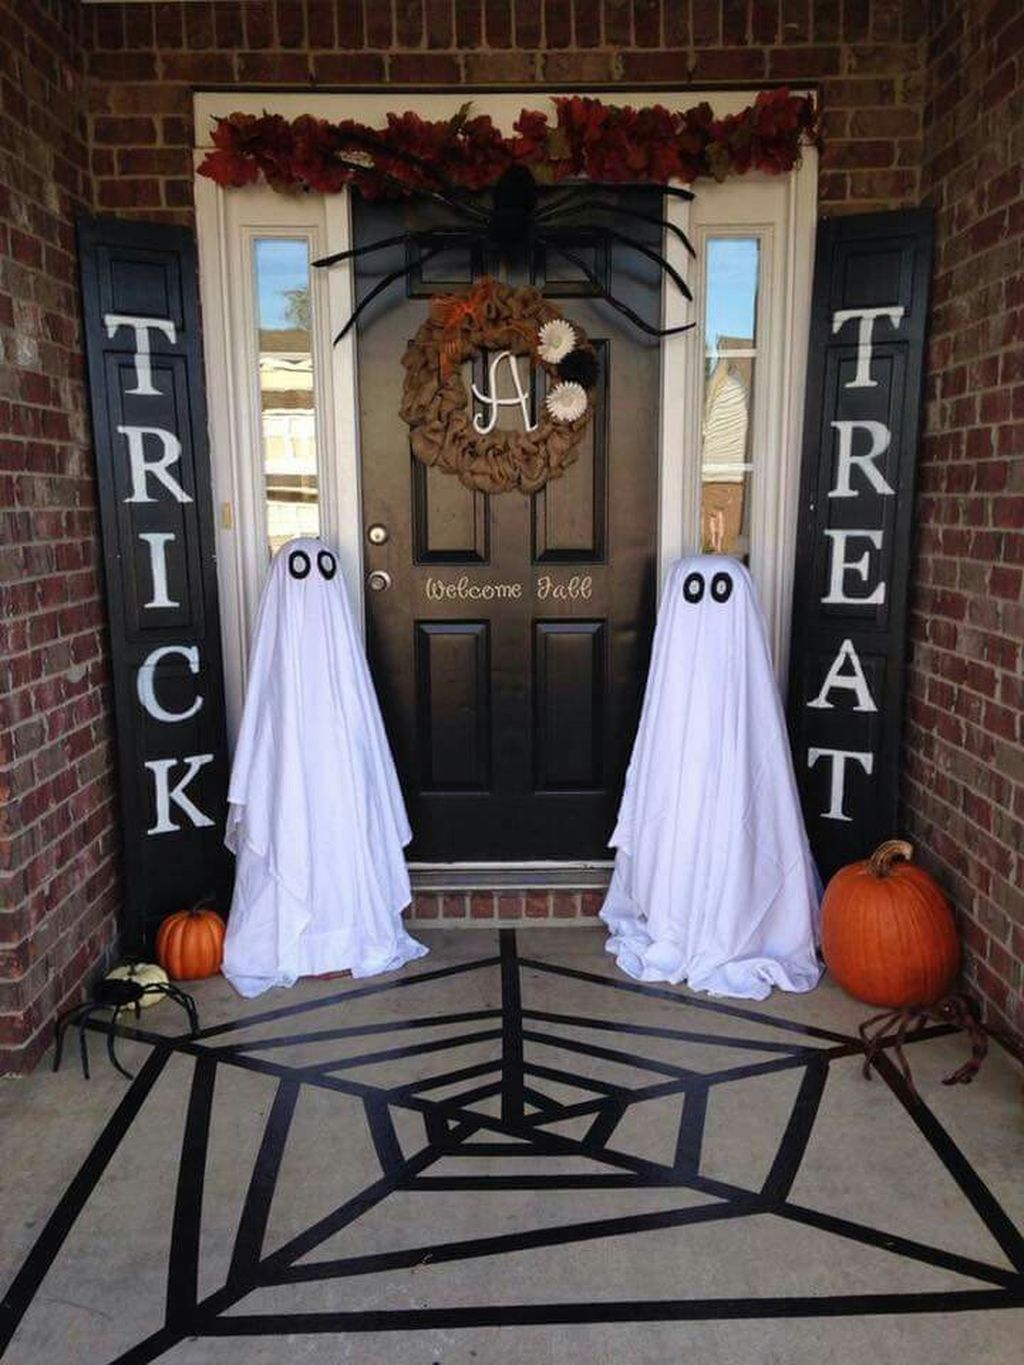 Easy But Inspiring Outdoor Fall Decoration Ideas 55